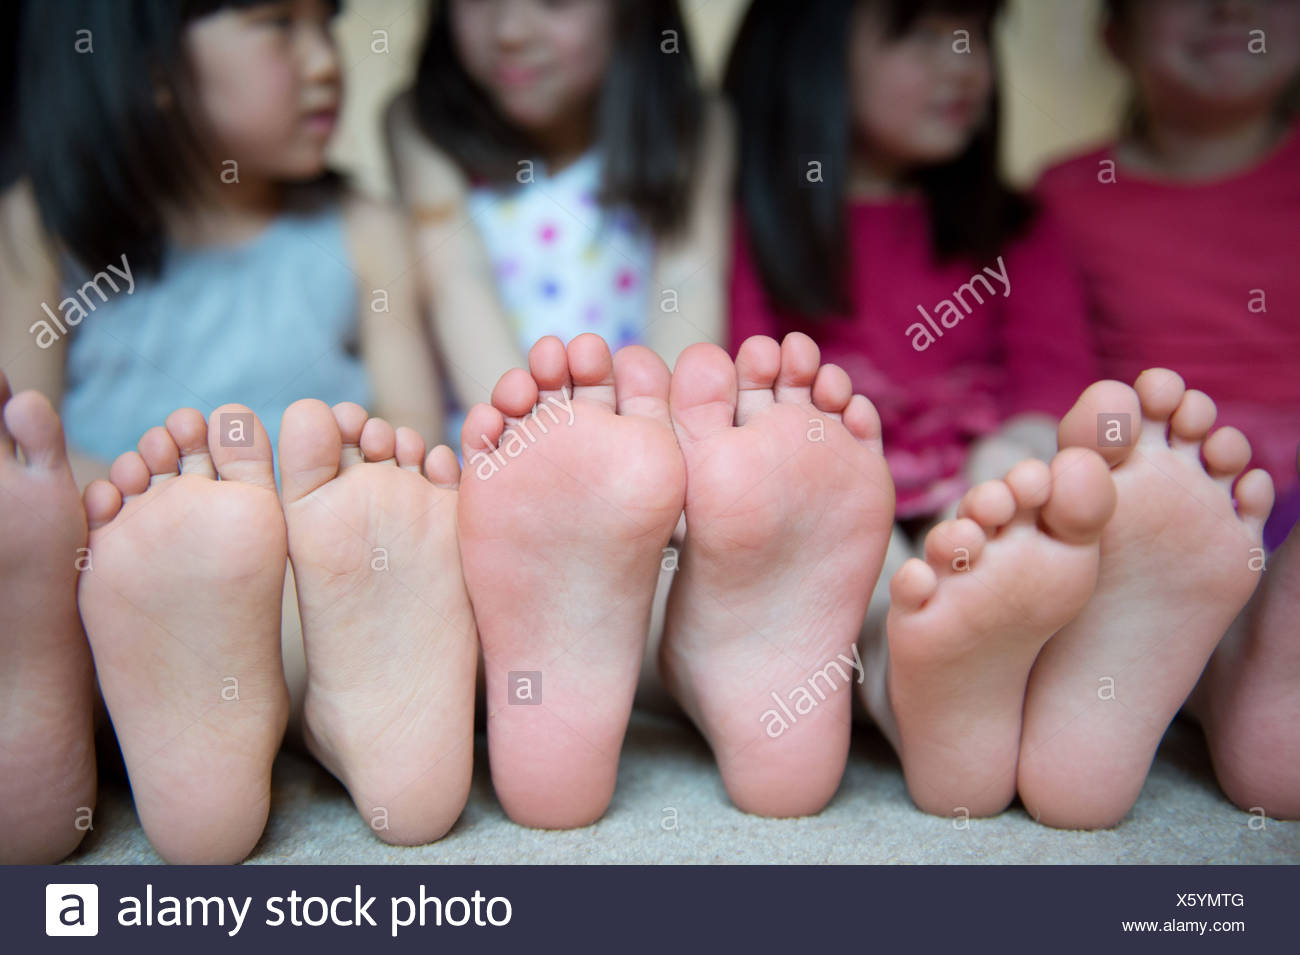 Girls sitting together with barefeet in a row - Stock Image